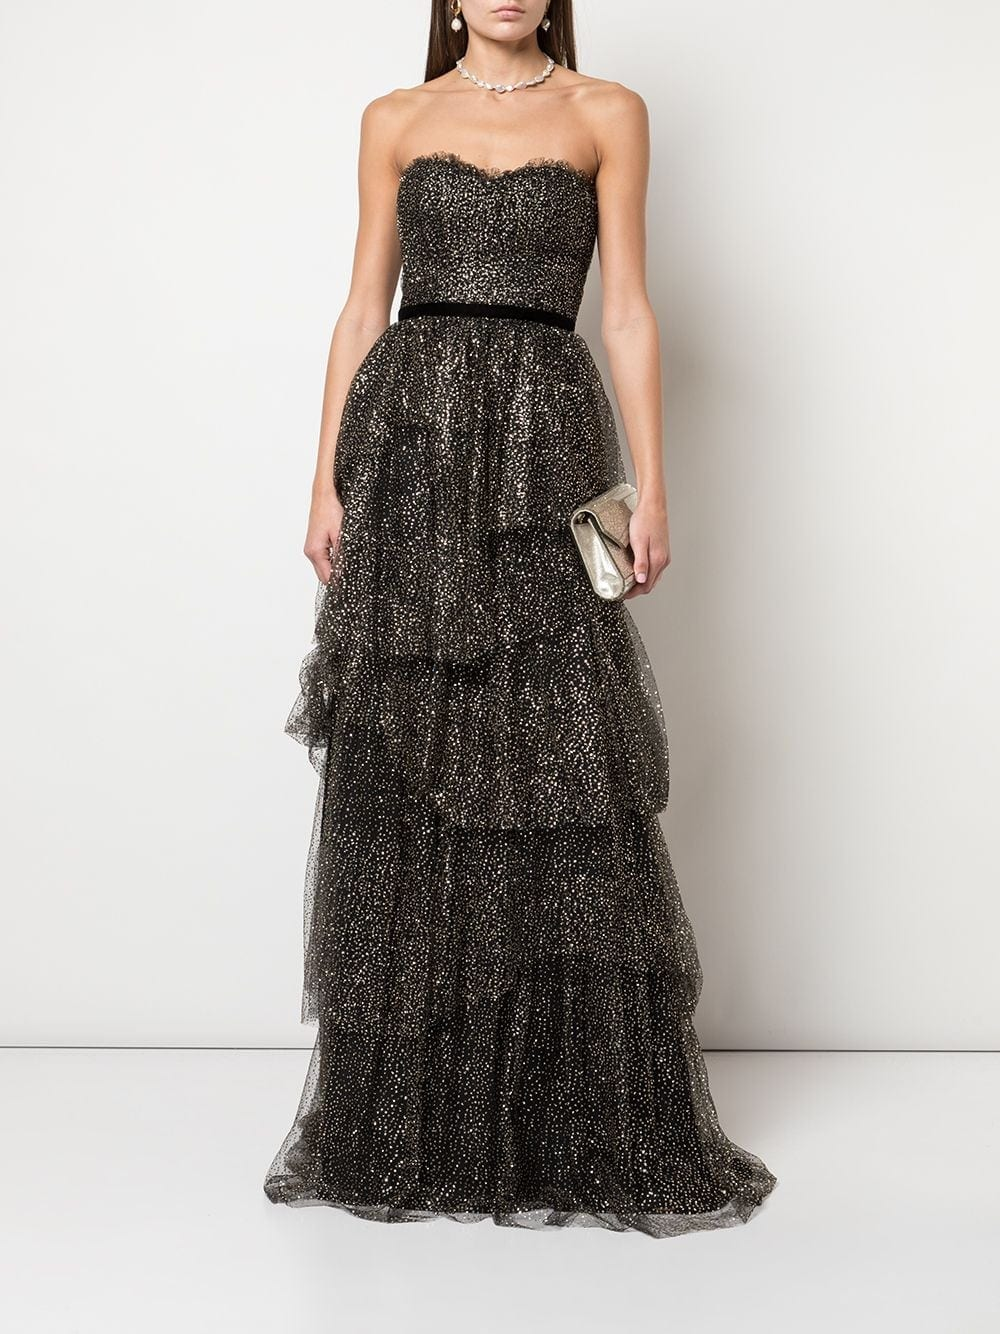 MARCHESA NOTTE Ruffled Tiered Strapless Gown